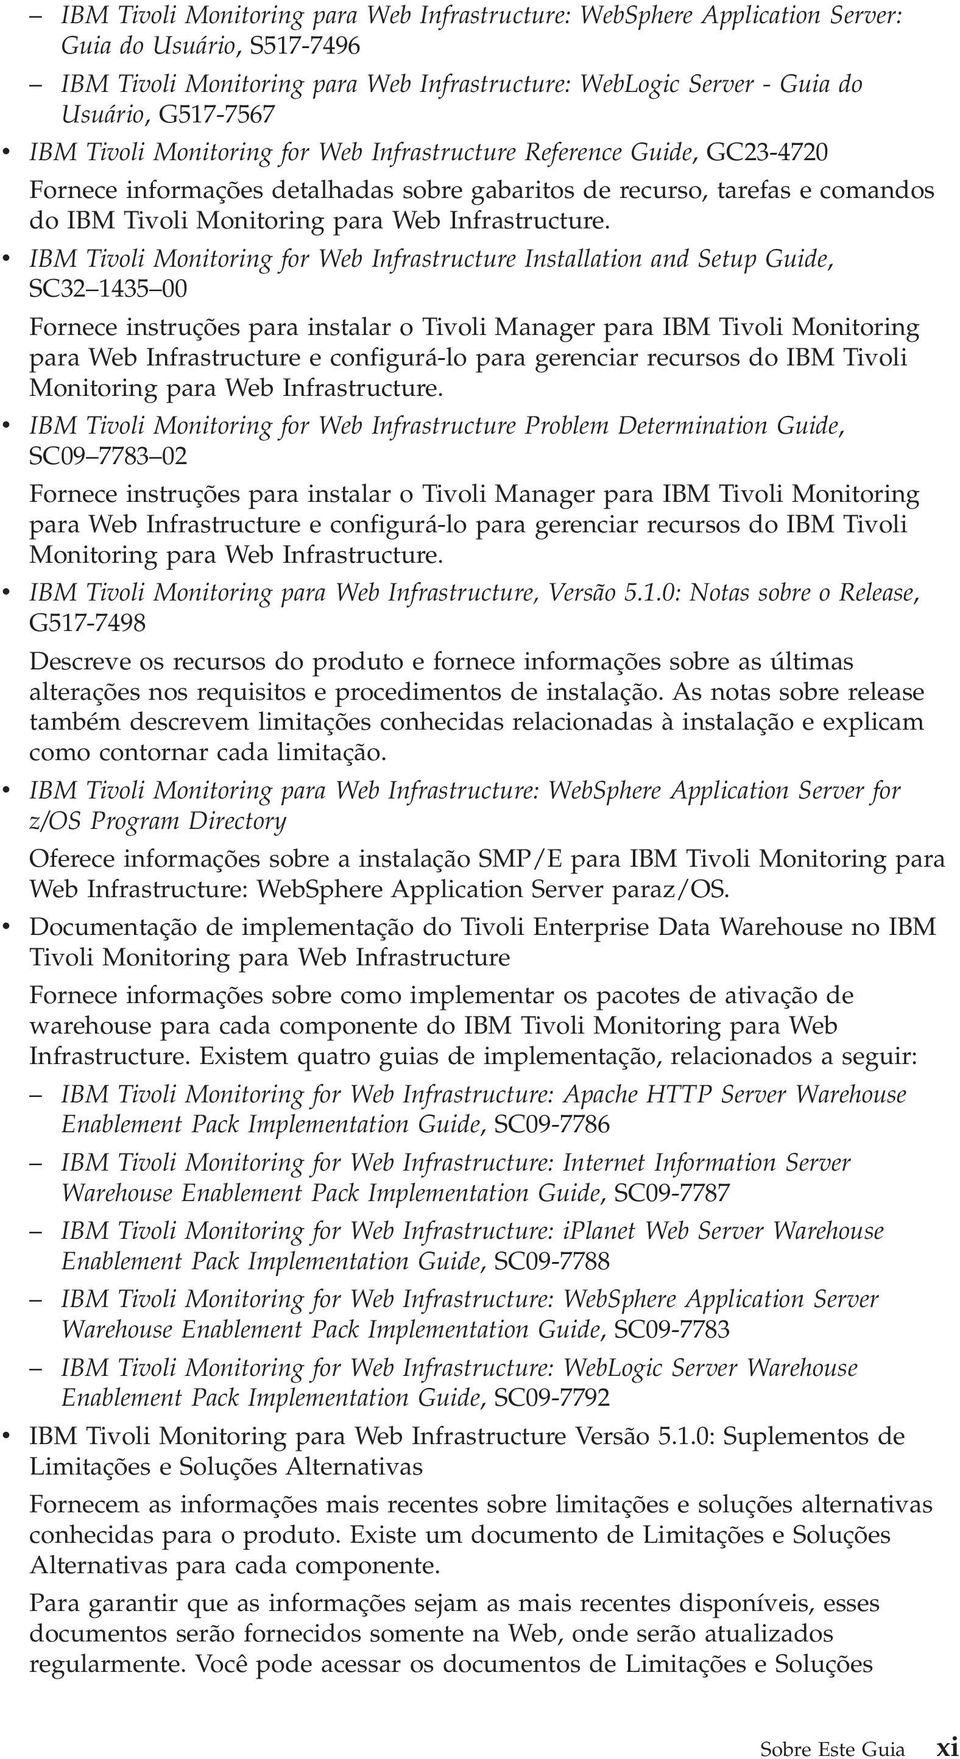 IBM Tioli Monitoring for Web Infrastructure Installation and Setup Guide, SC32 1435 00 Fornece instruções para instalar o Tioli Manager para IBM Tioli Monitoring para Web Infrastructure e